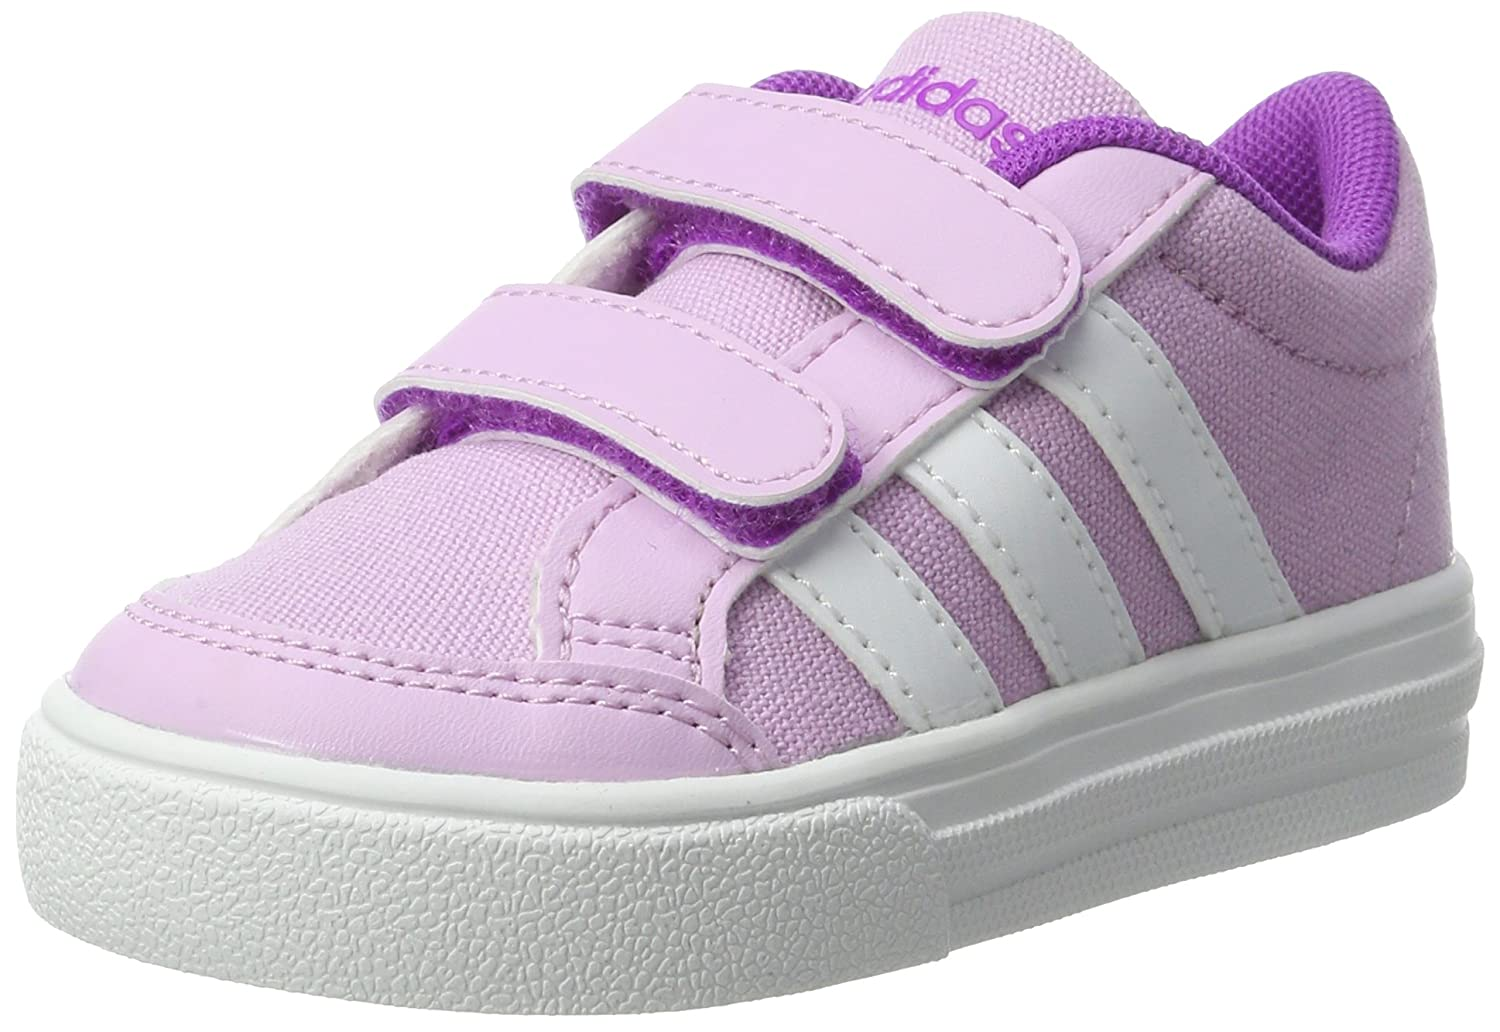 Adidas Vs Set CMF Inf, Sneakers Basses Mixte Enfant